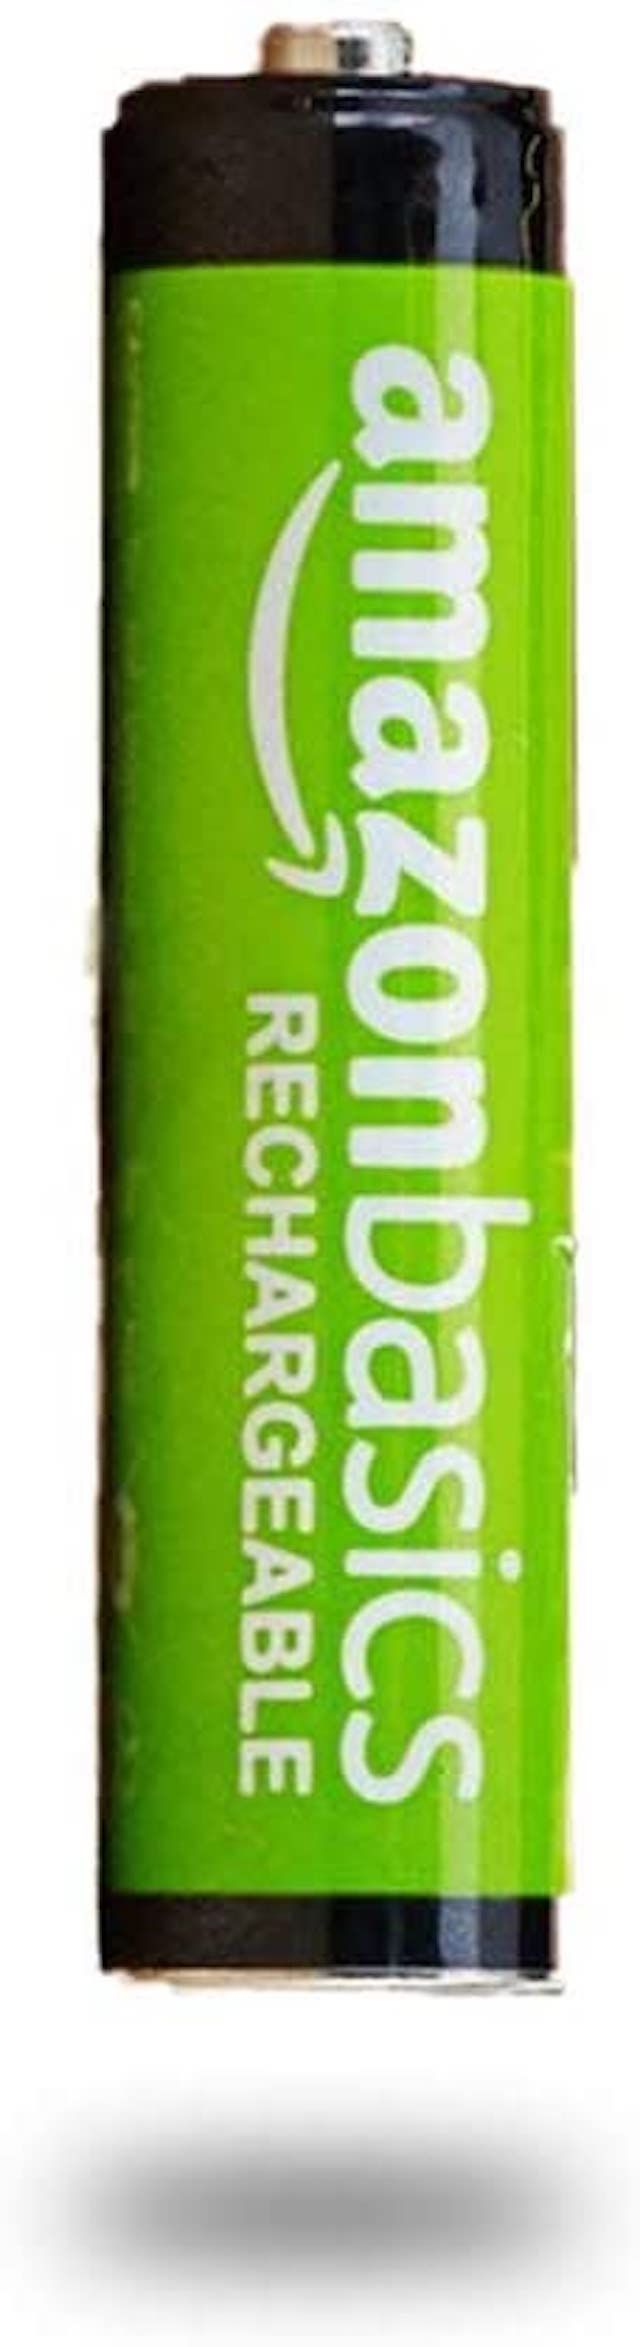 AmazonBasics AA Rechargeable Batteries, Pack of 8